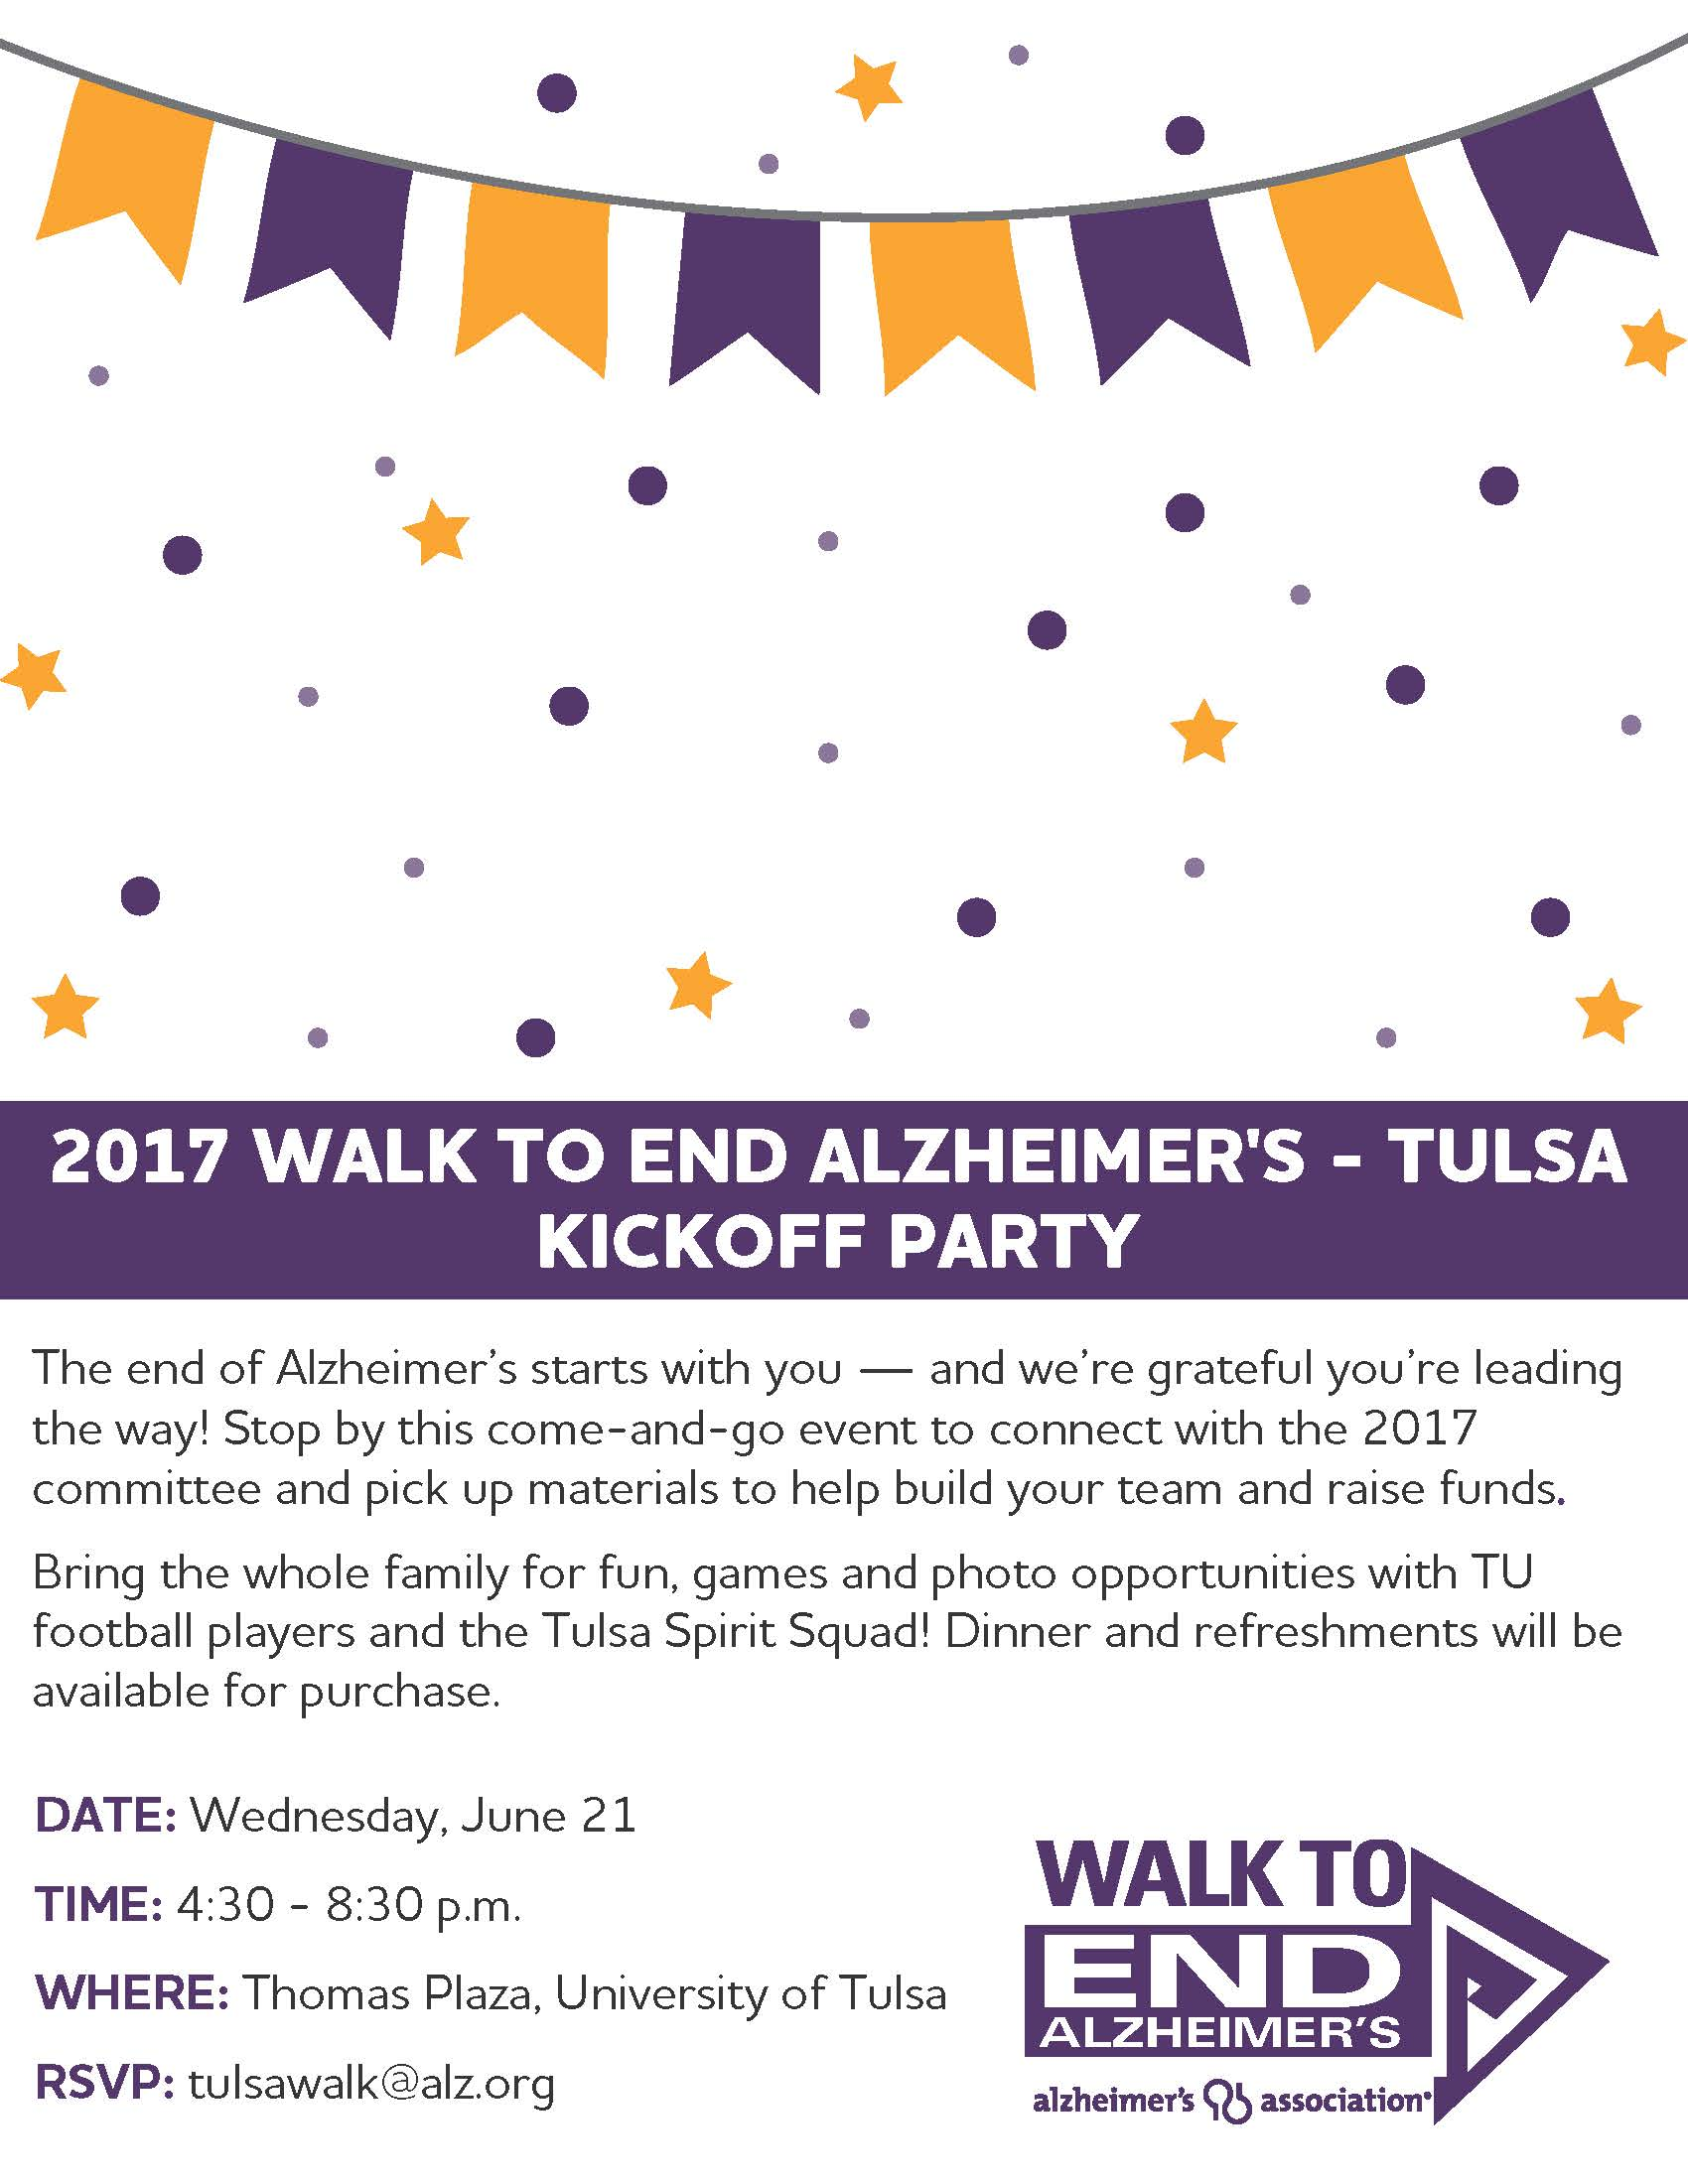 Tulsa Walk Kick-off 2